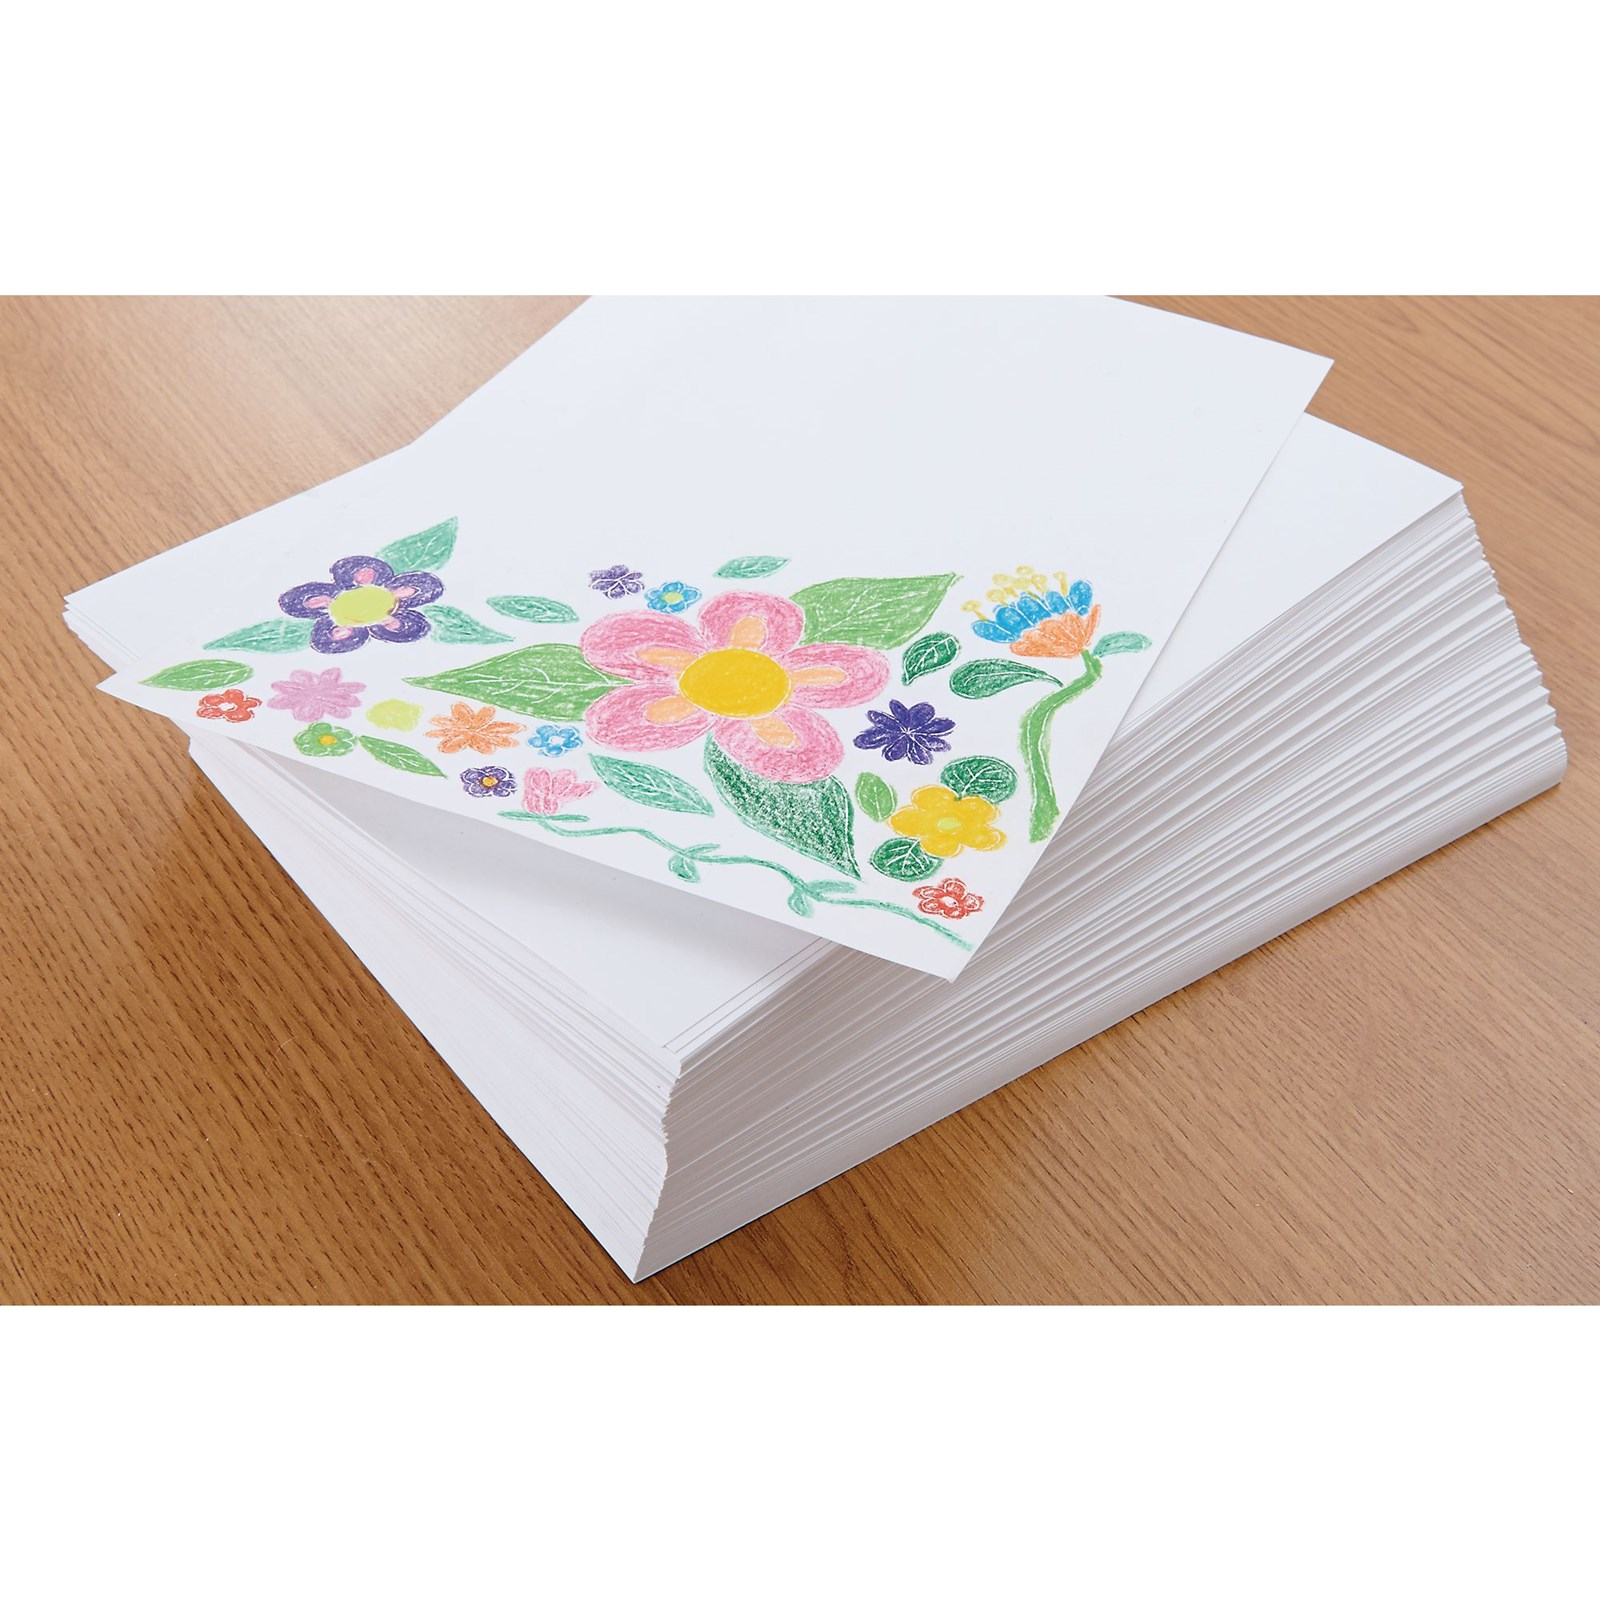 cartridge paper Cartridge paper is a high quality type of heavy paper used for illustration and drawingpaper of this type was originally used for making paper cartridges for firearms.